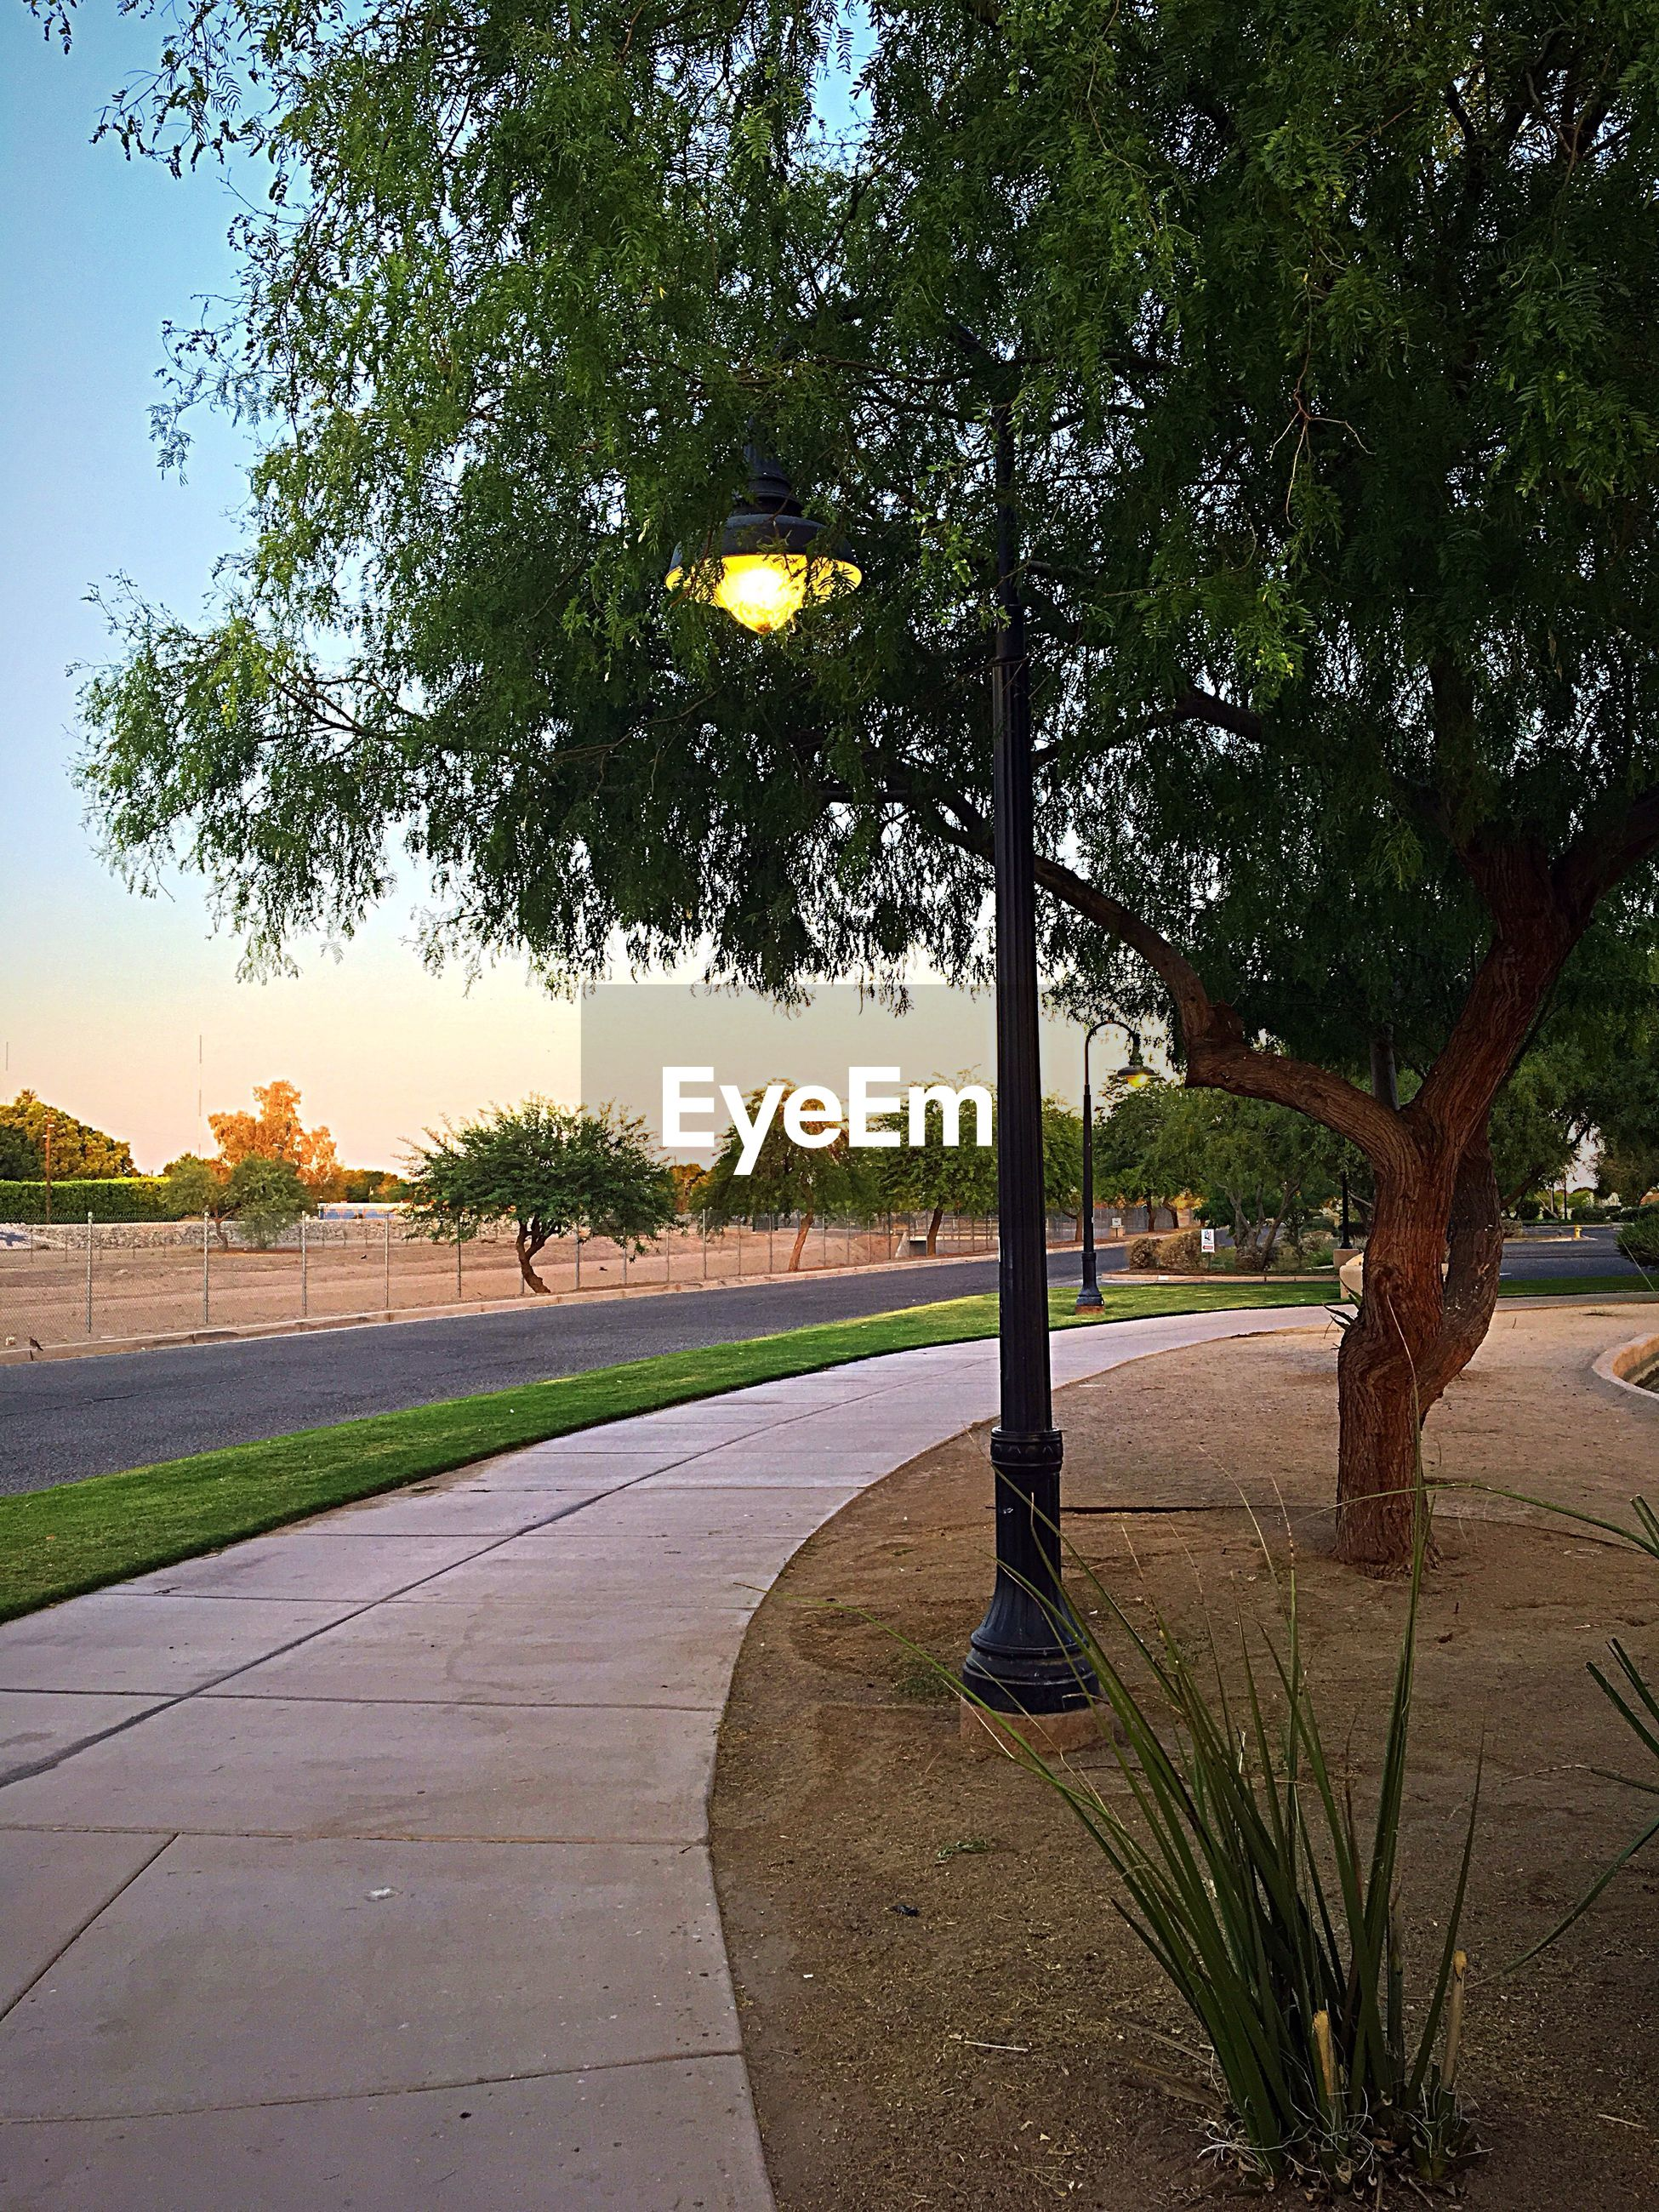 Loving these Park Lamps at West Wetlands. Taking my morning Walk and enjoying the scene💫 Just me. Morning Excercise Walk iPhone Photography Just Me. Morning Excercise Walk IPhone Photography Fun With IPhone Peace Of Mind Sunrise Enjoying The Morning Tranquil Scene Tree Plant Nature No People Outdoors Park Beauty In Nature Park - Man Made Space